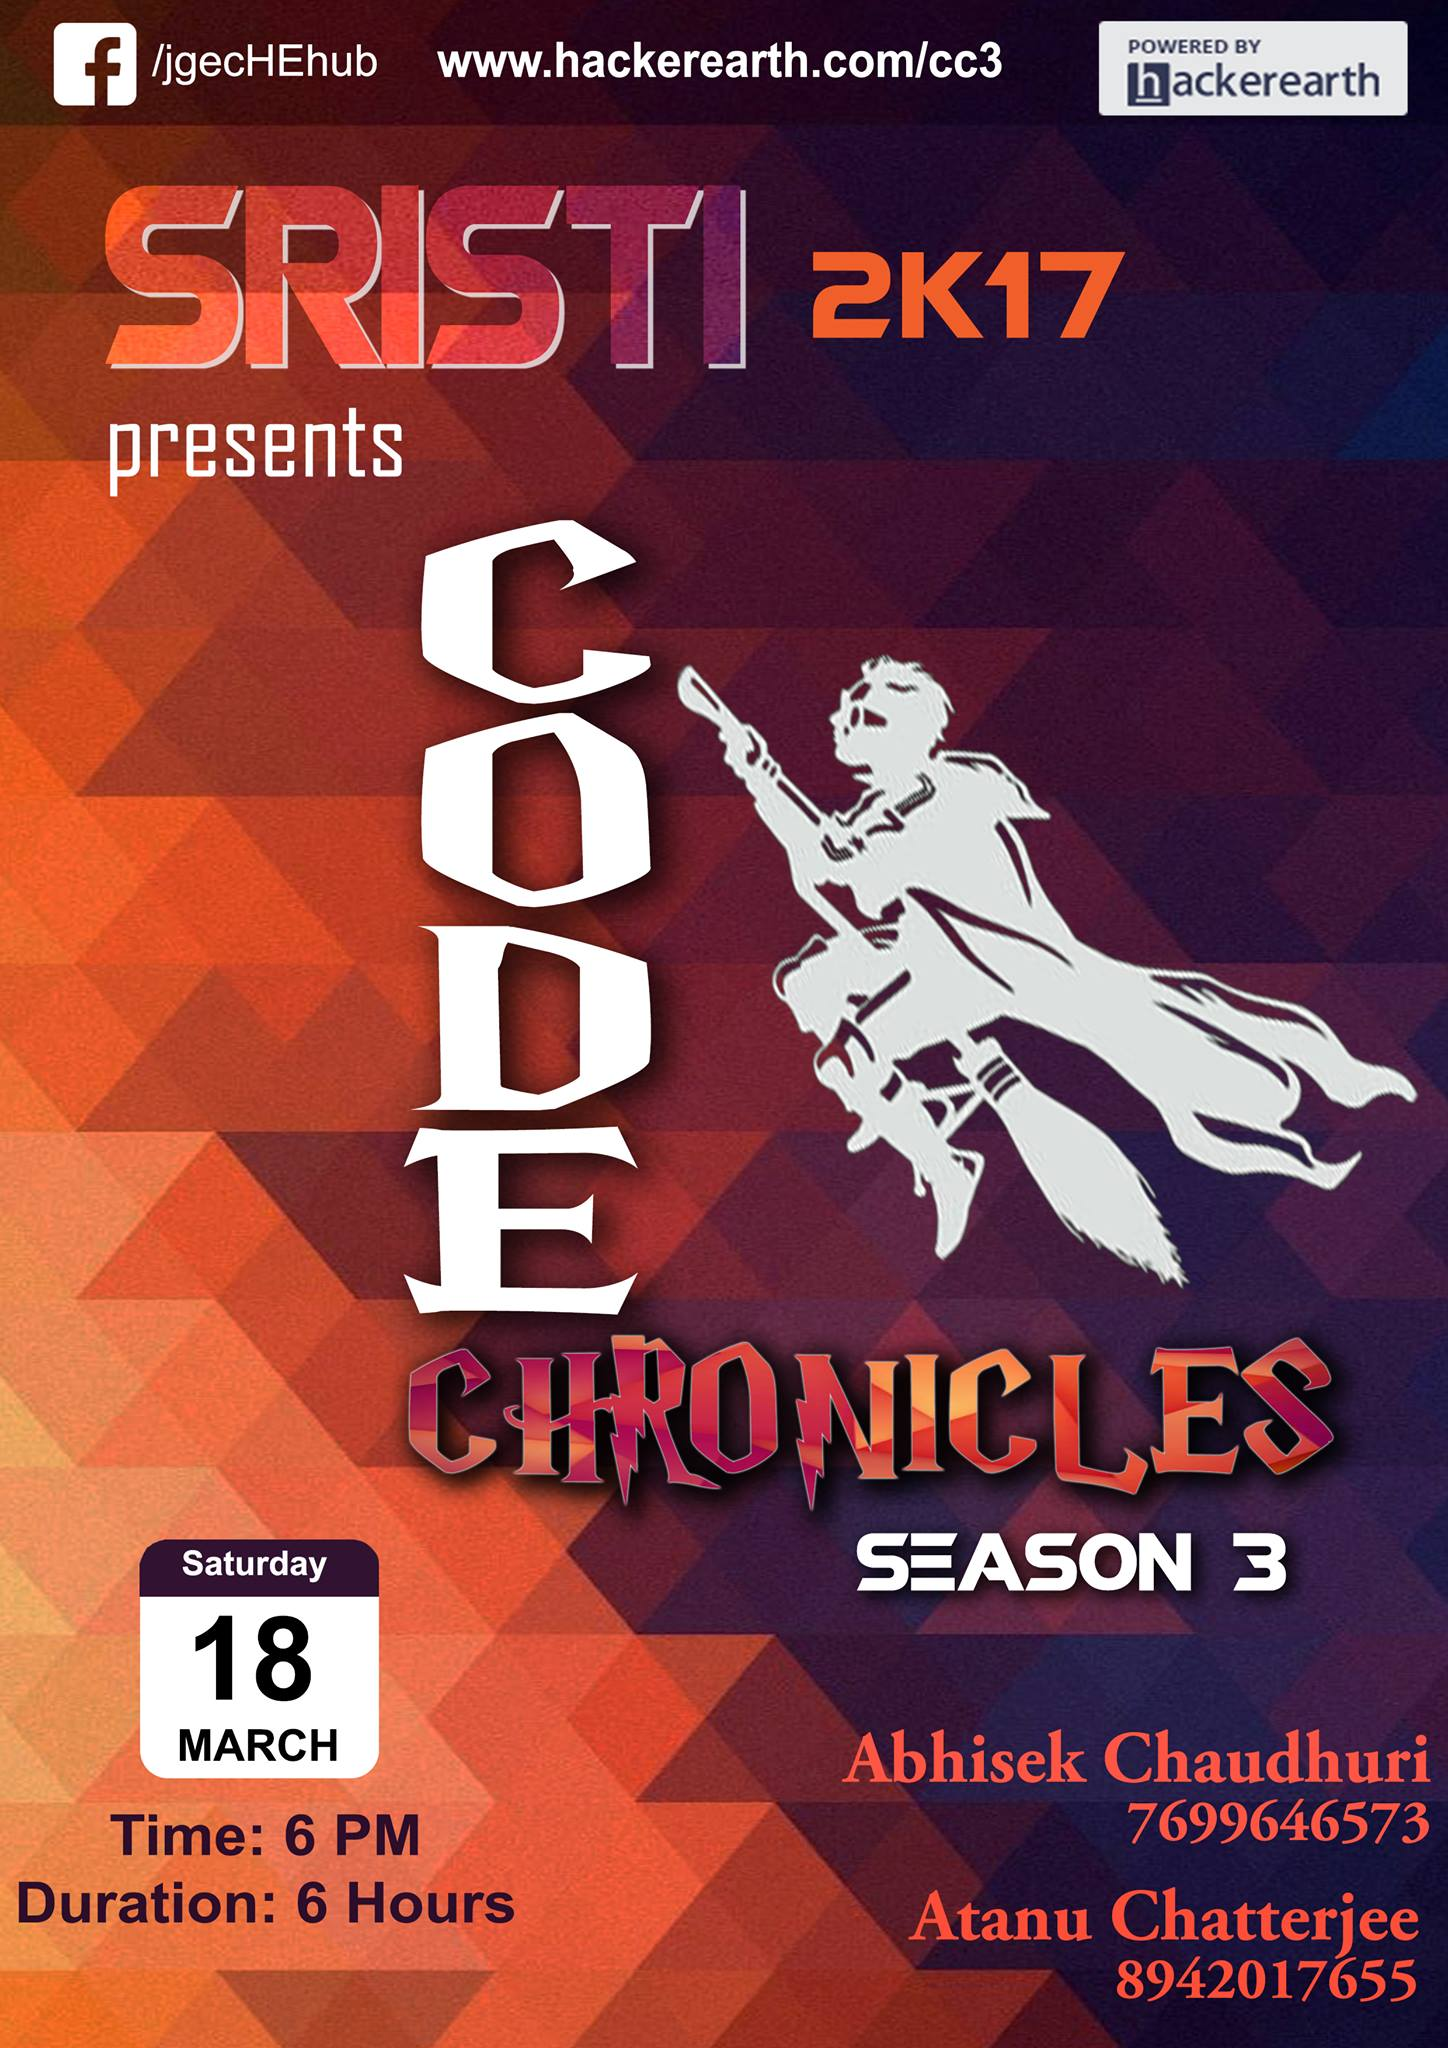 Code Chronicles Season 3